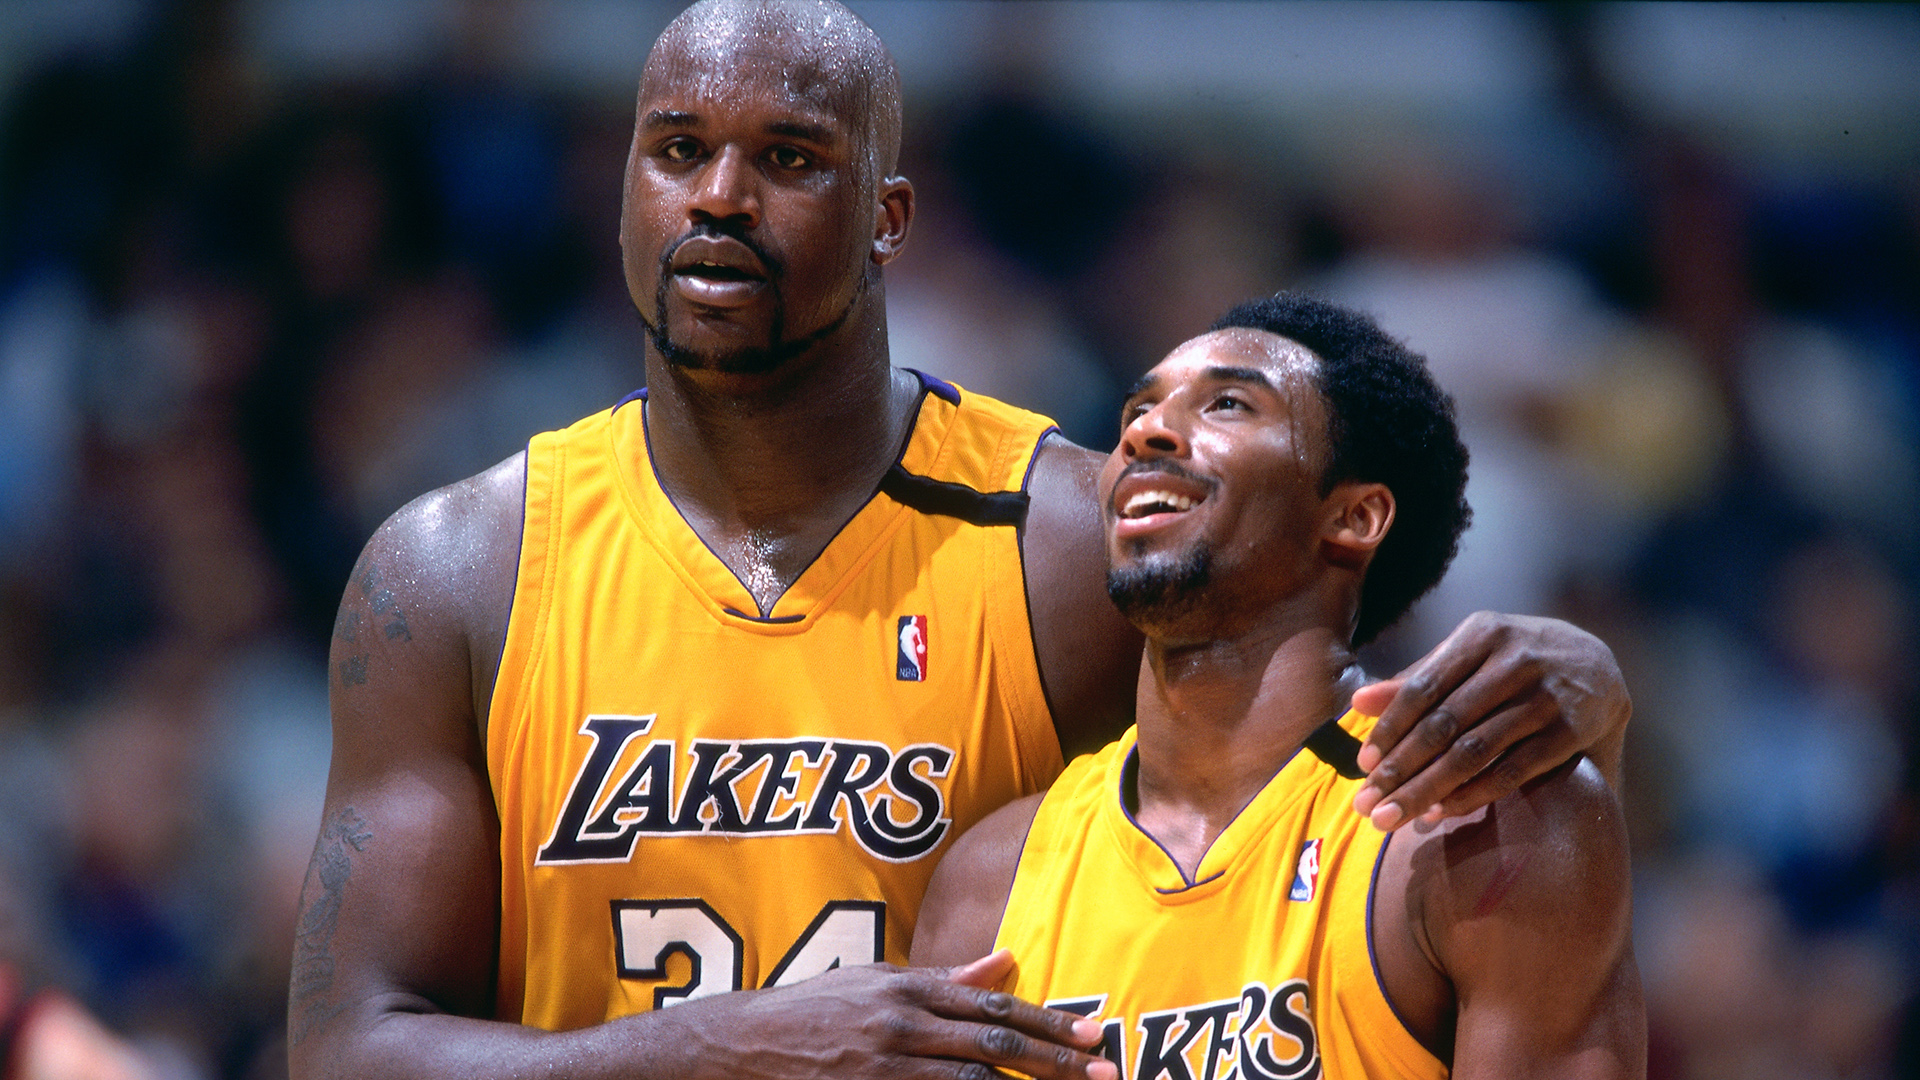 Top Moments: Famous alley-oop from Kobe to Shaq caps Lakers' comeback